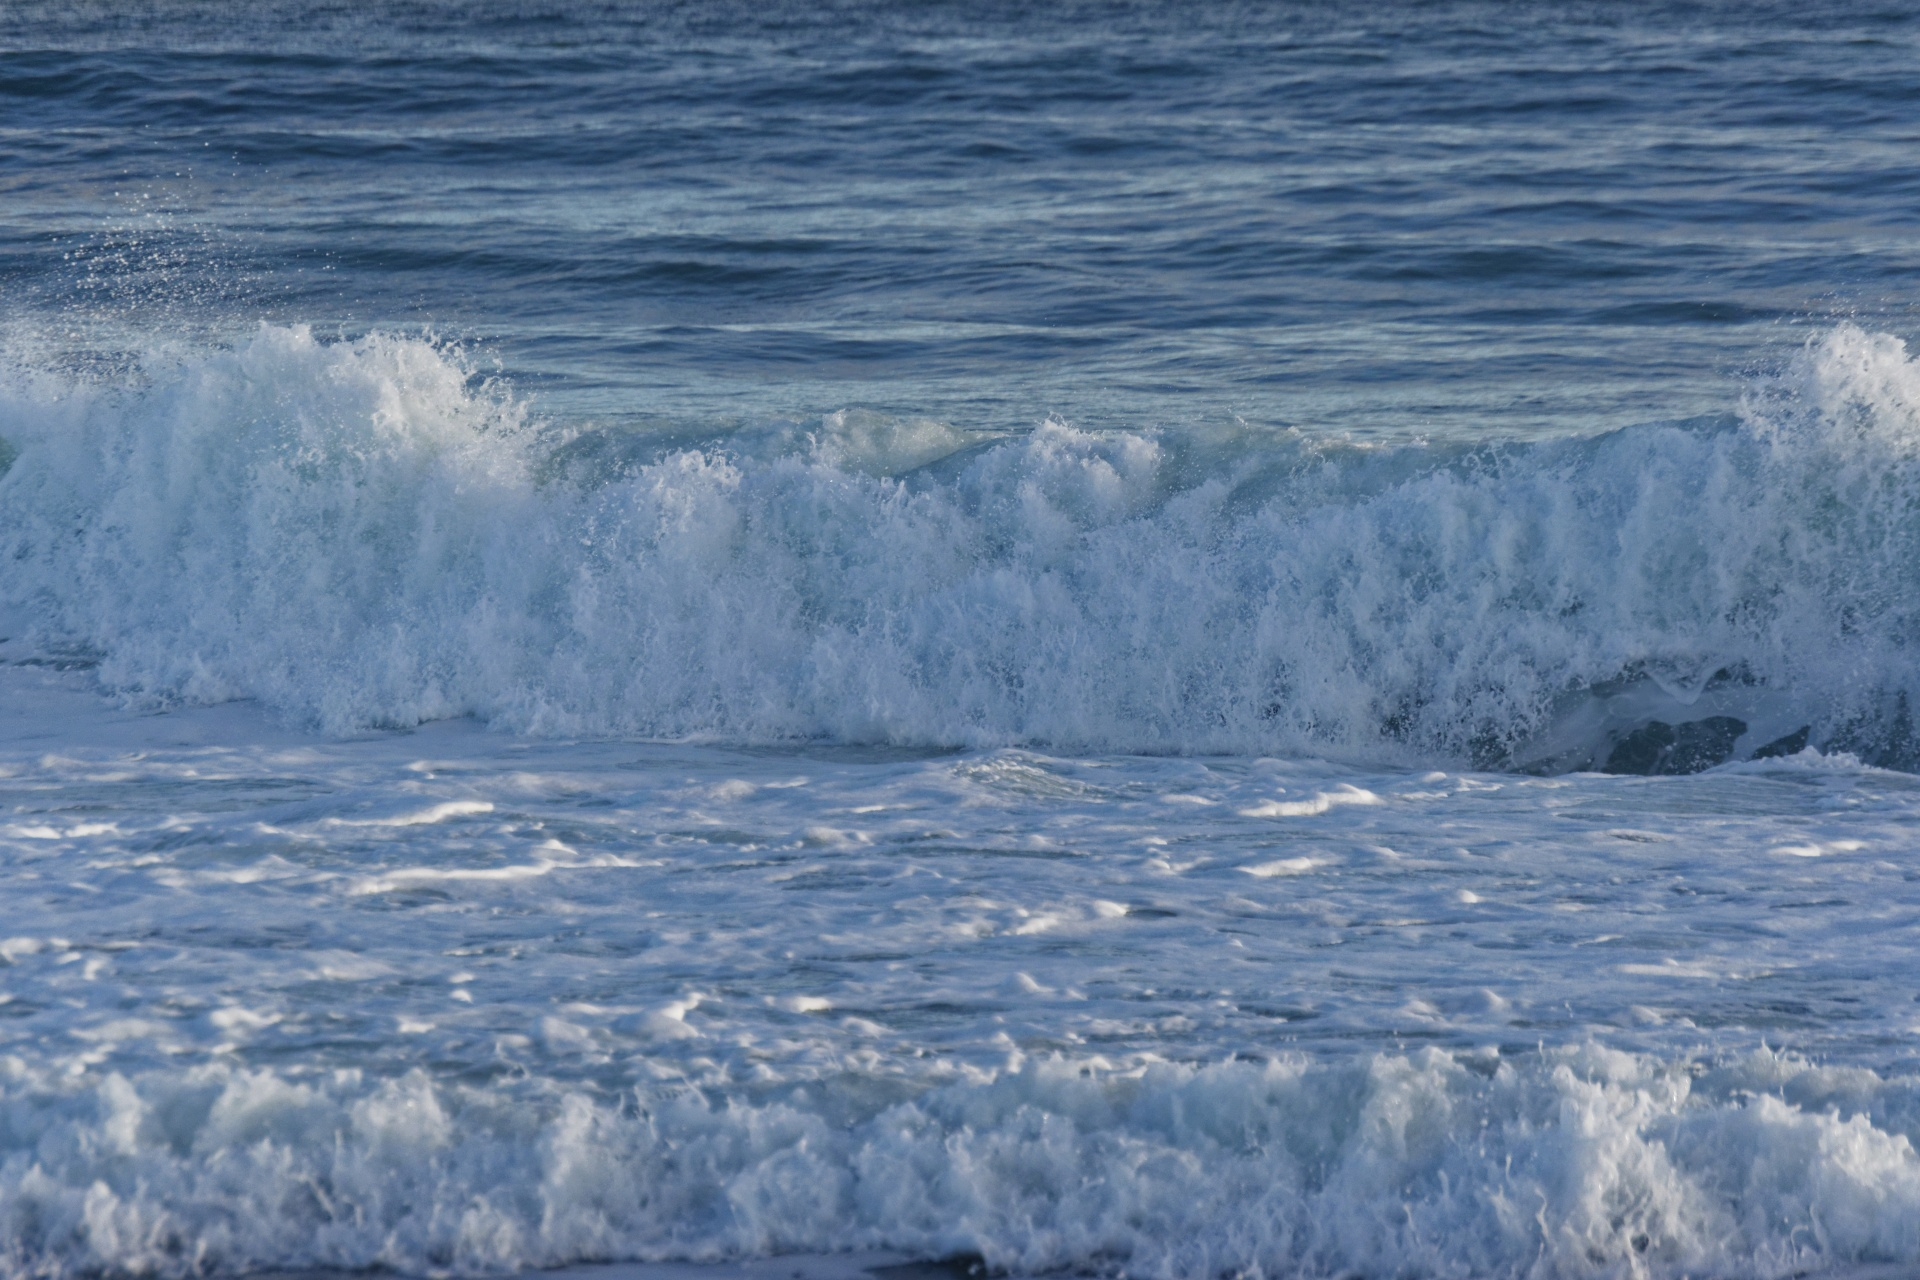 Breaking Waves 2 Free Stock Photo - Public Domain Pictures